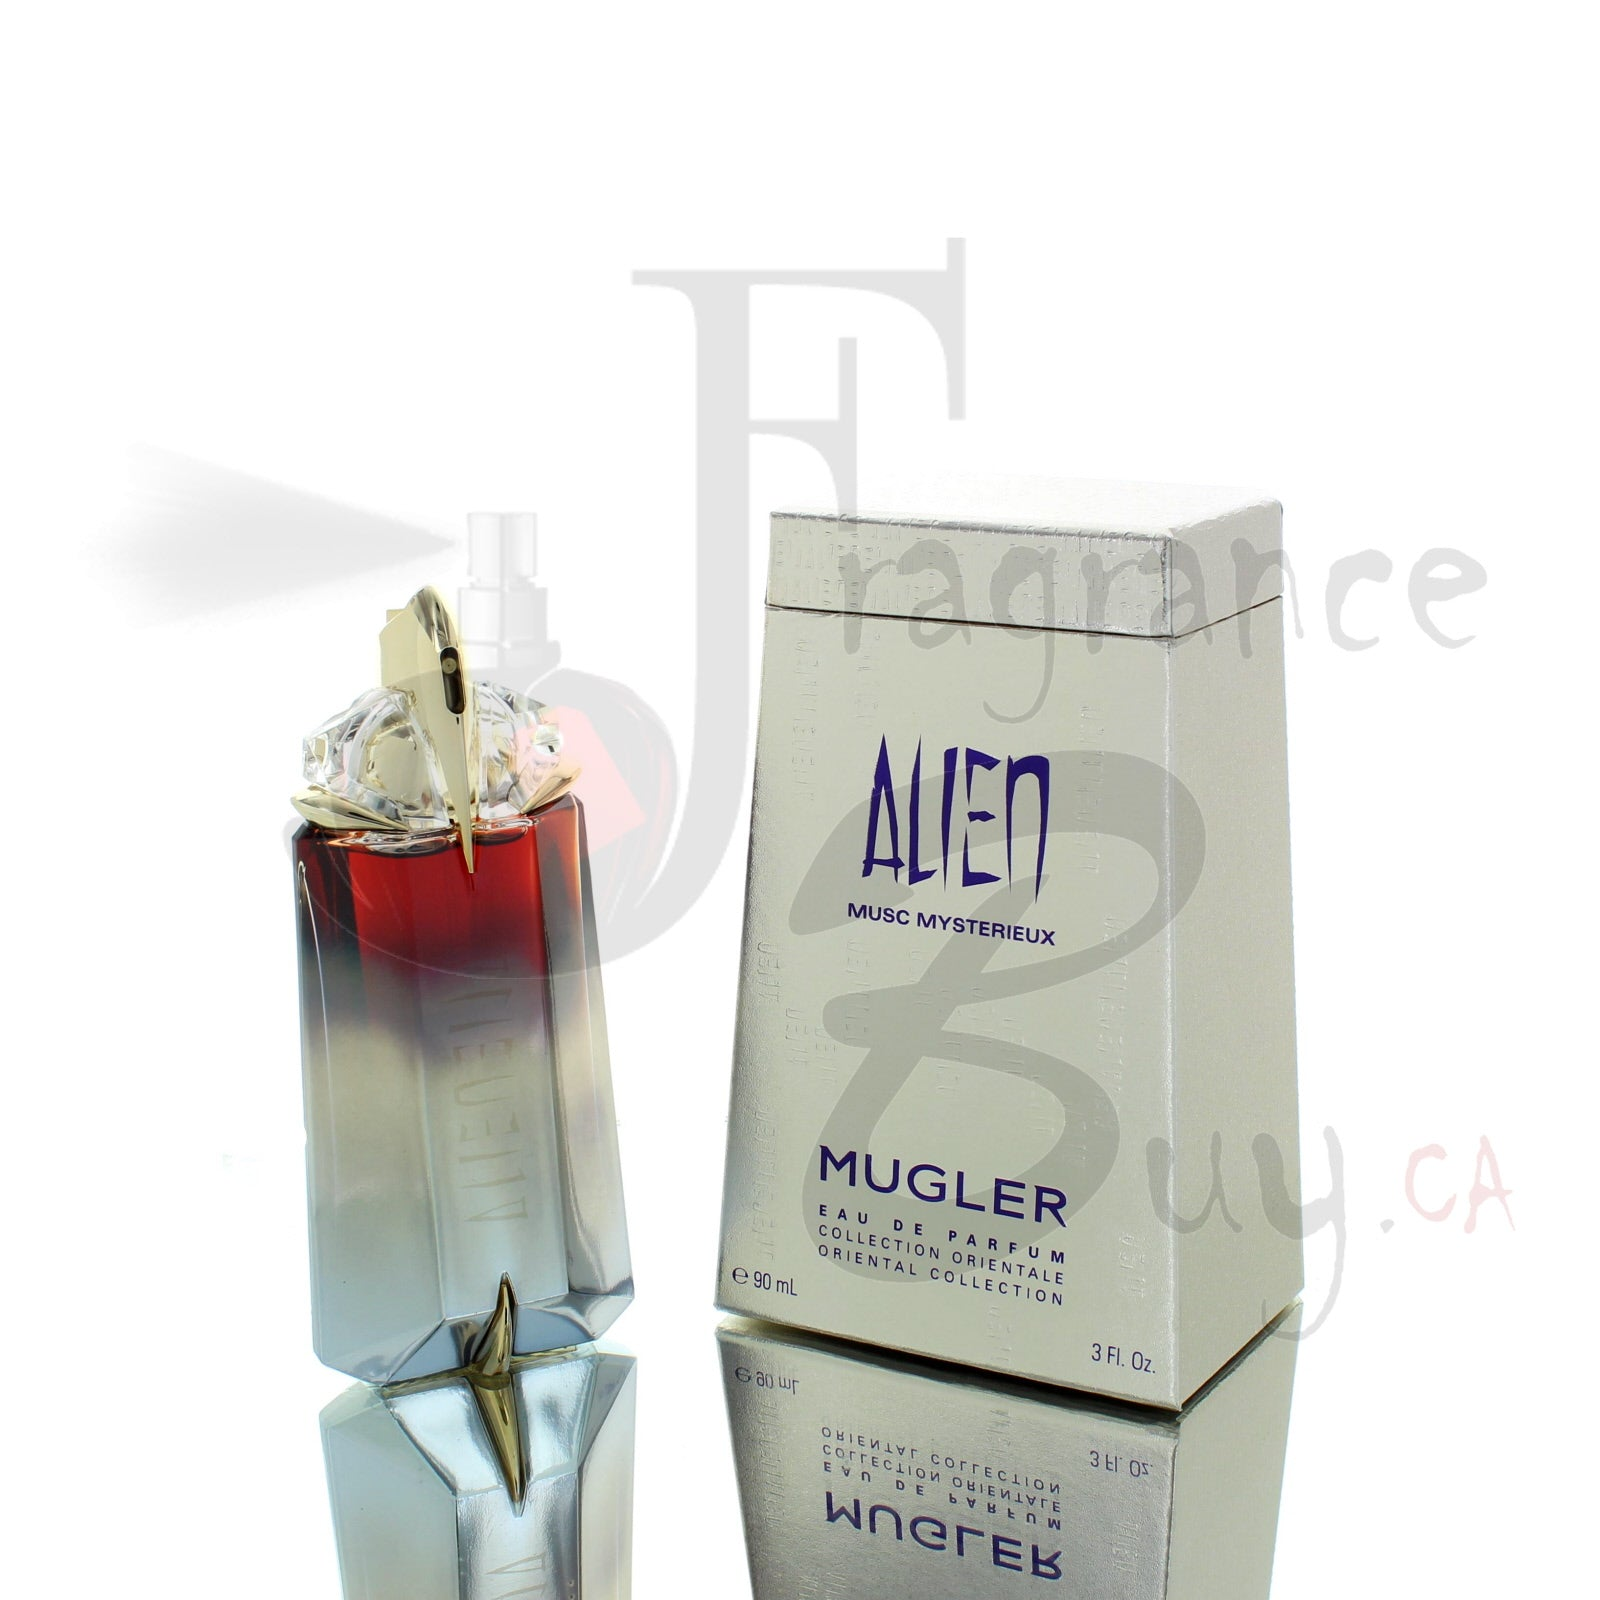 Mugler Alien Musc Mysterieux For Woman